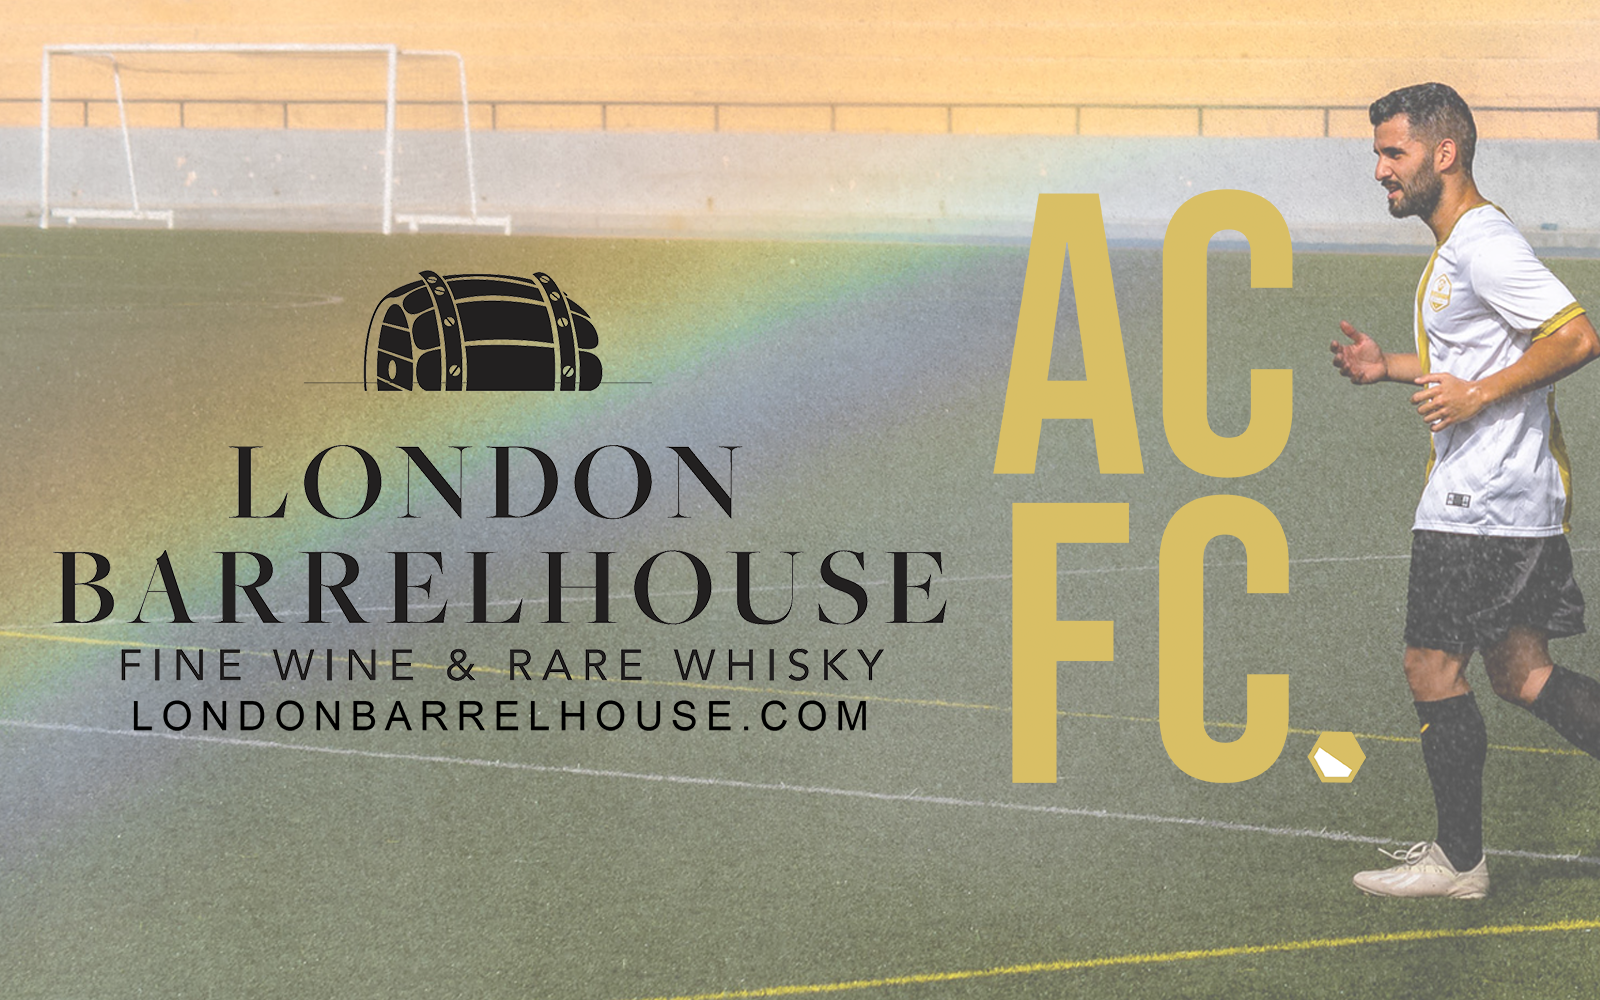 London Barrelhouse and Alicante City FC announce partnership